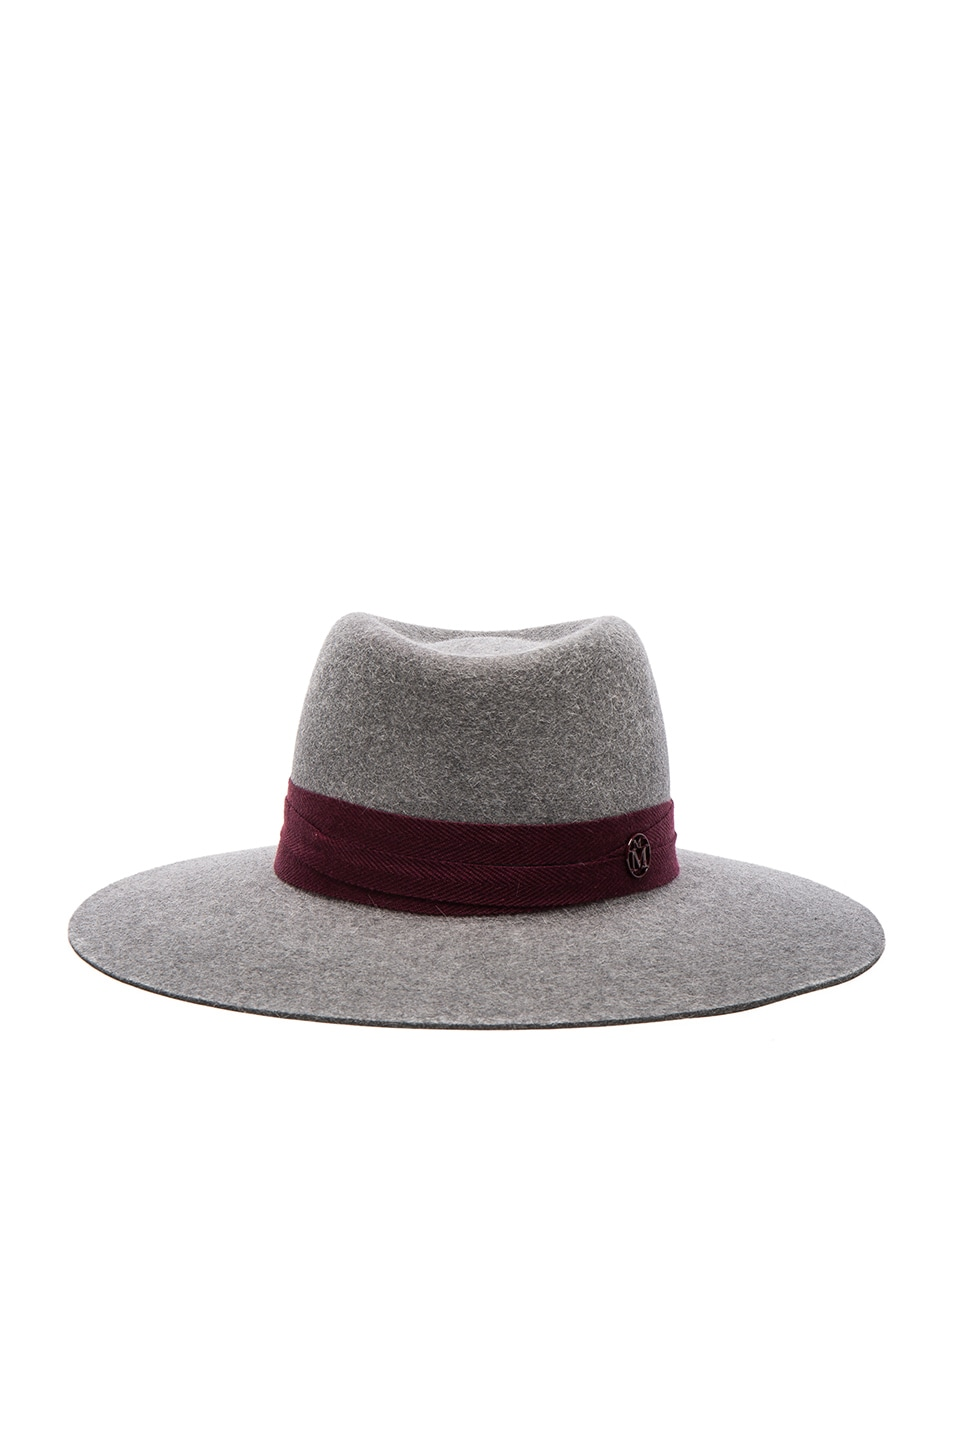 Image 1 of Maison Michel Charles Hat in Grey & Bordeaux